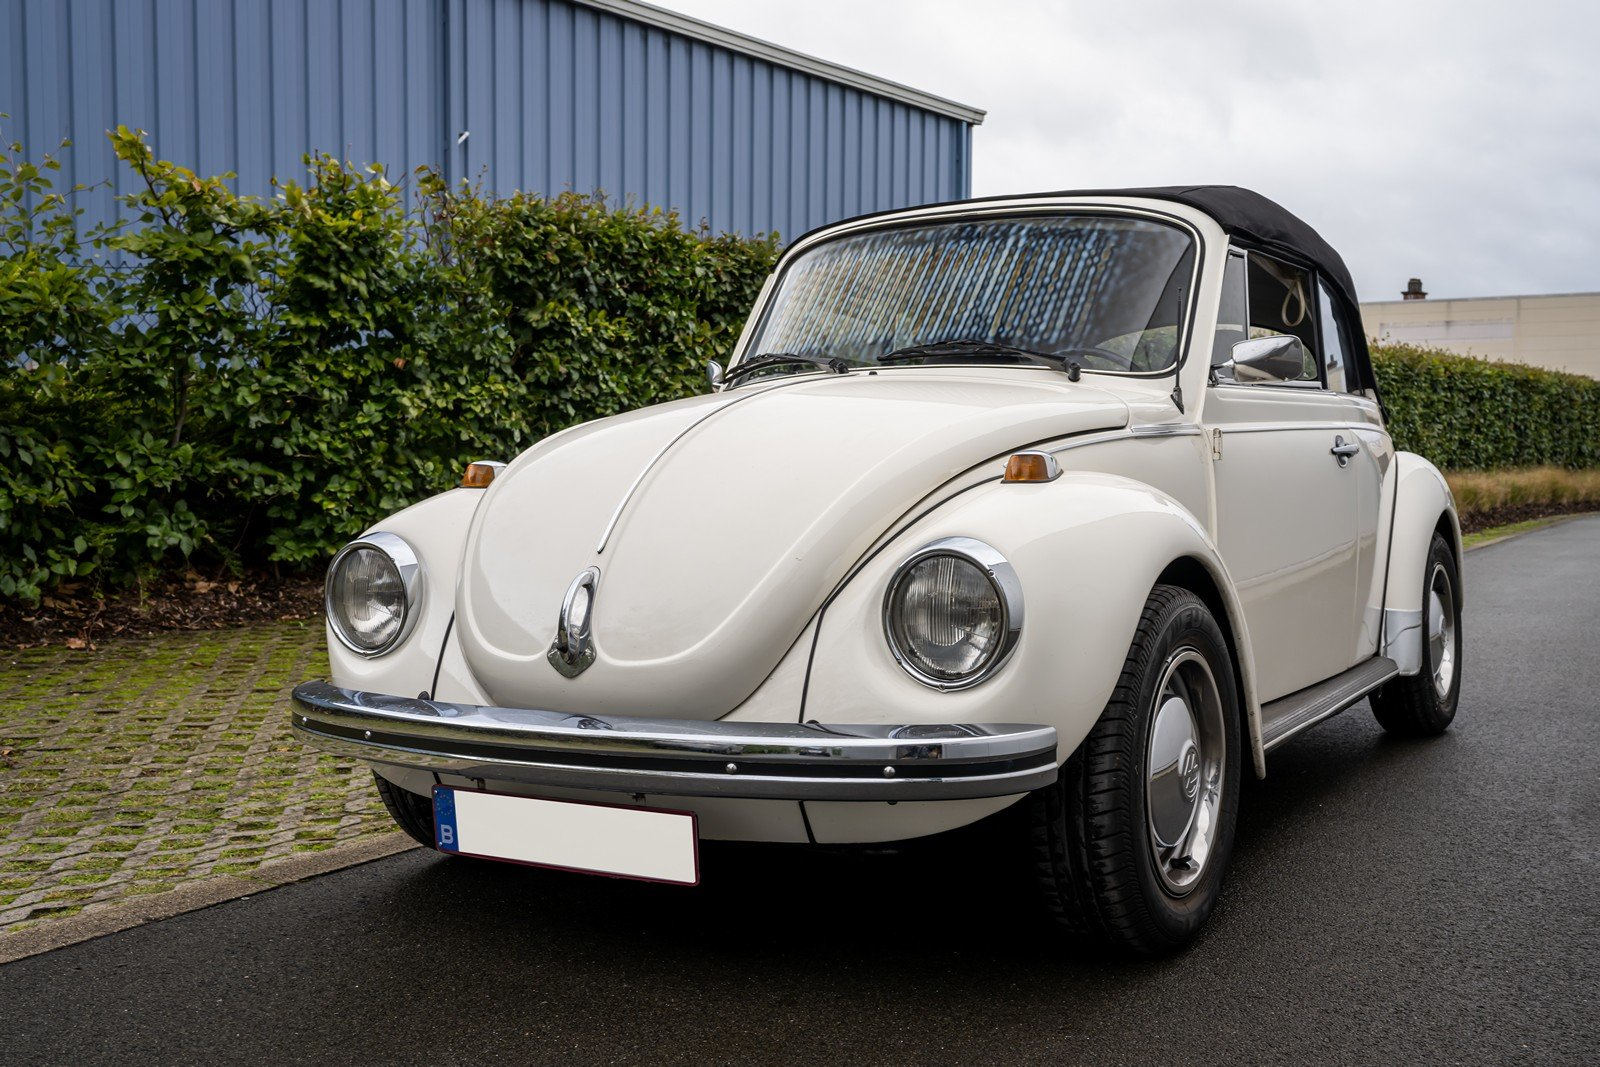 1973 Volkswagen Beetle Type 1303 Cabriolet For Sale (picture 4 of 39)